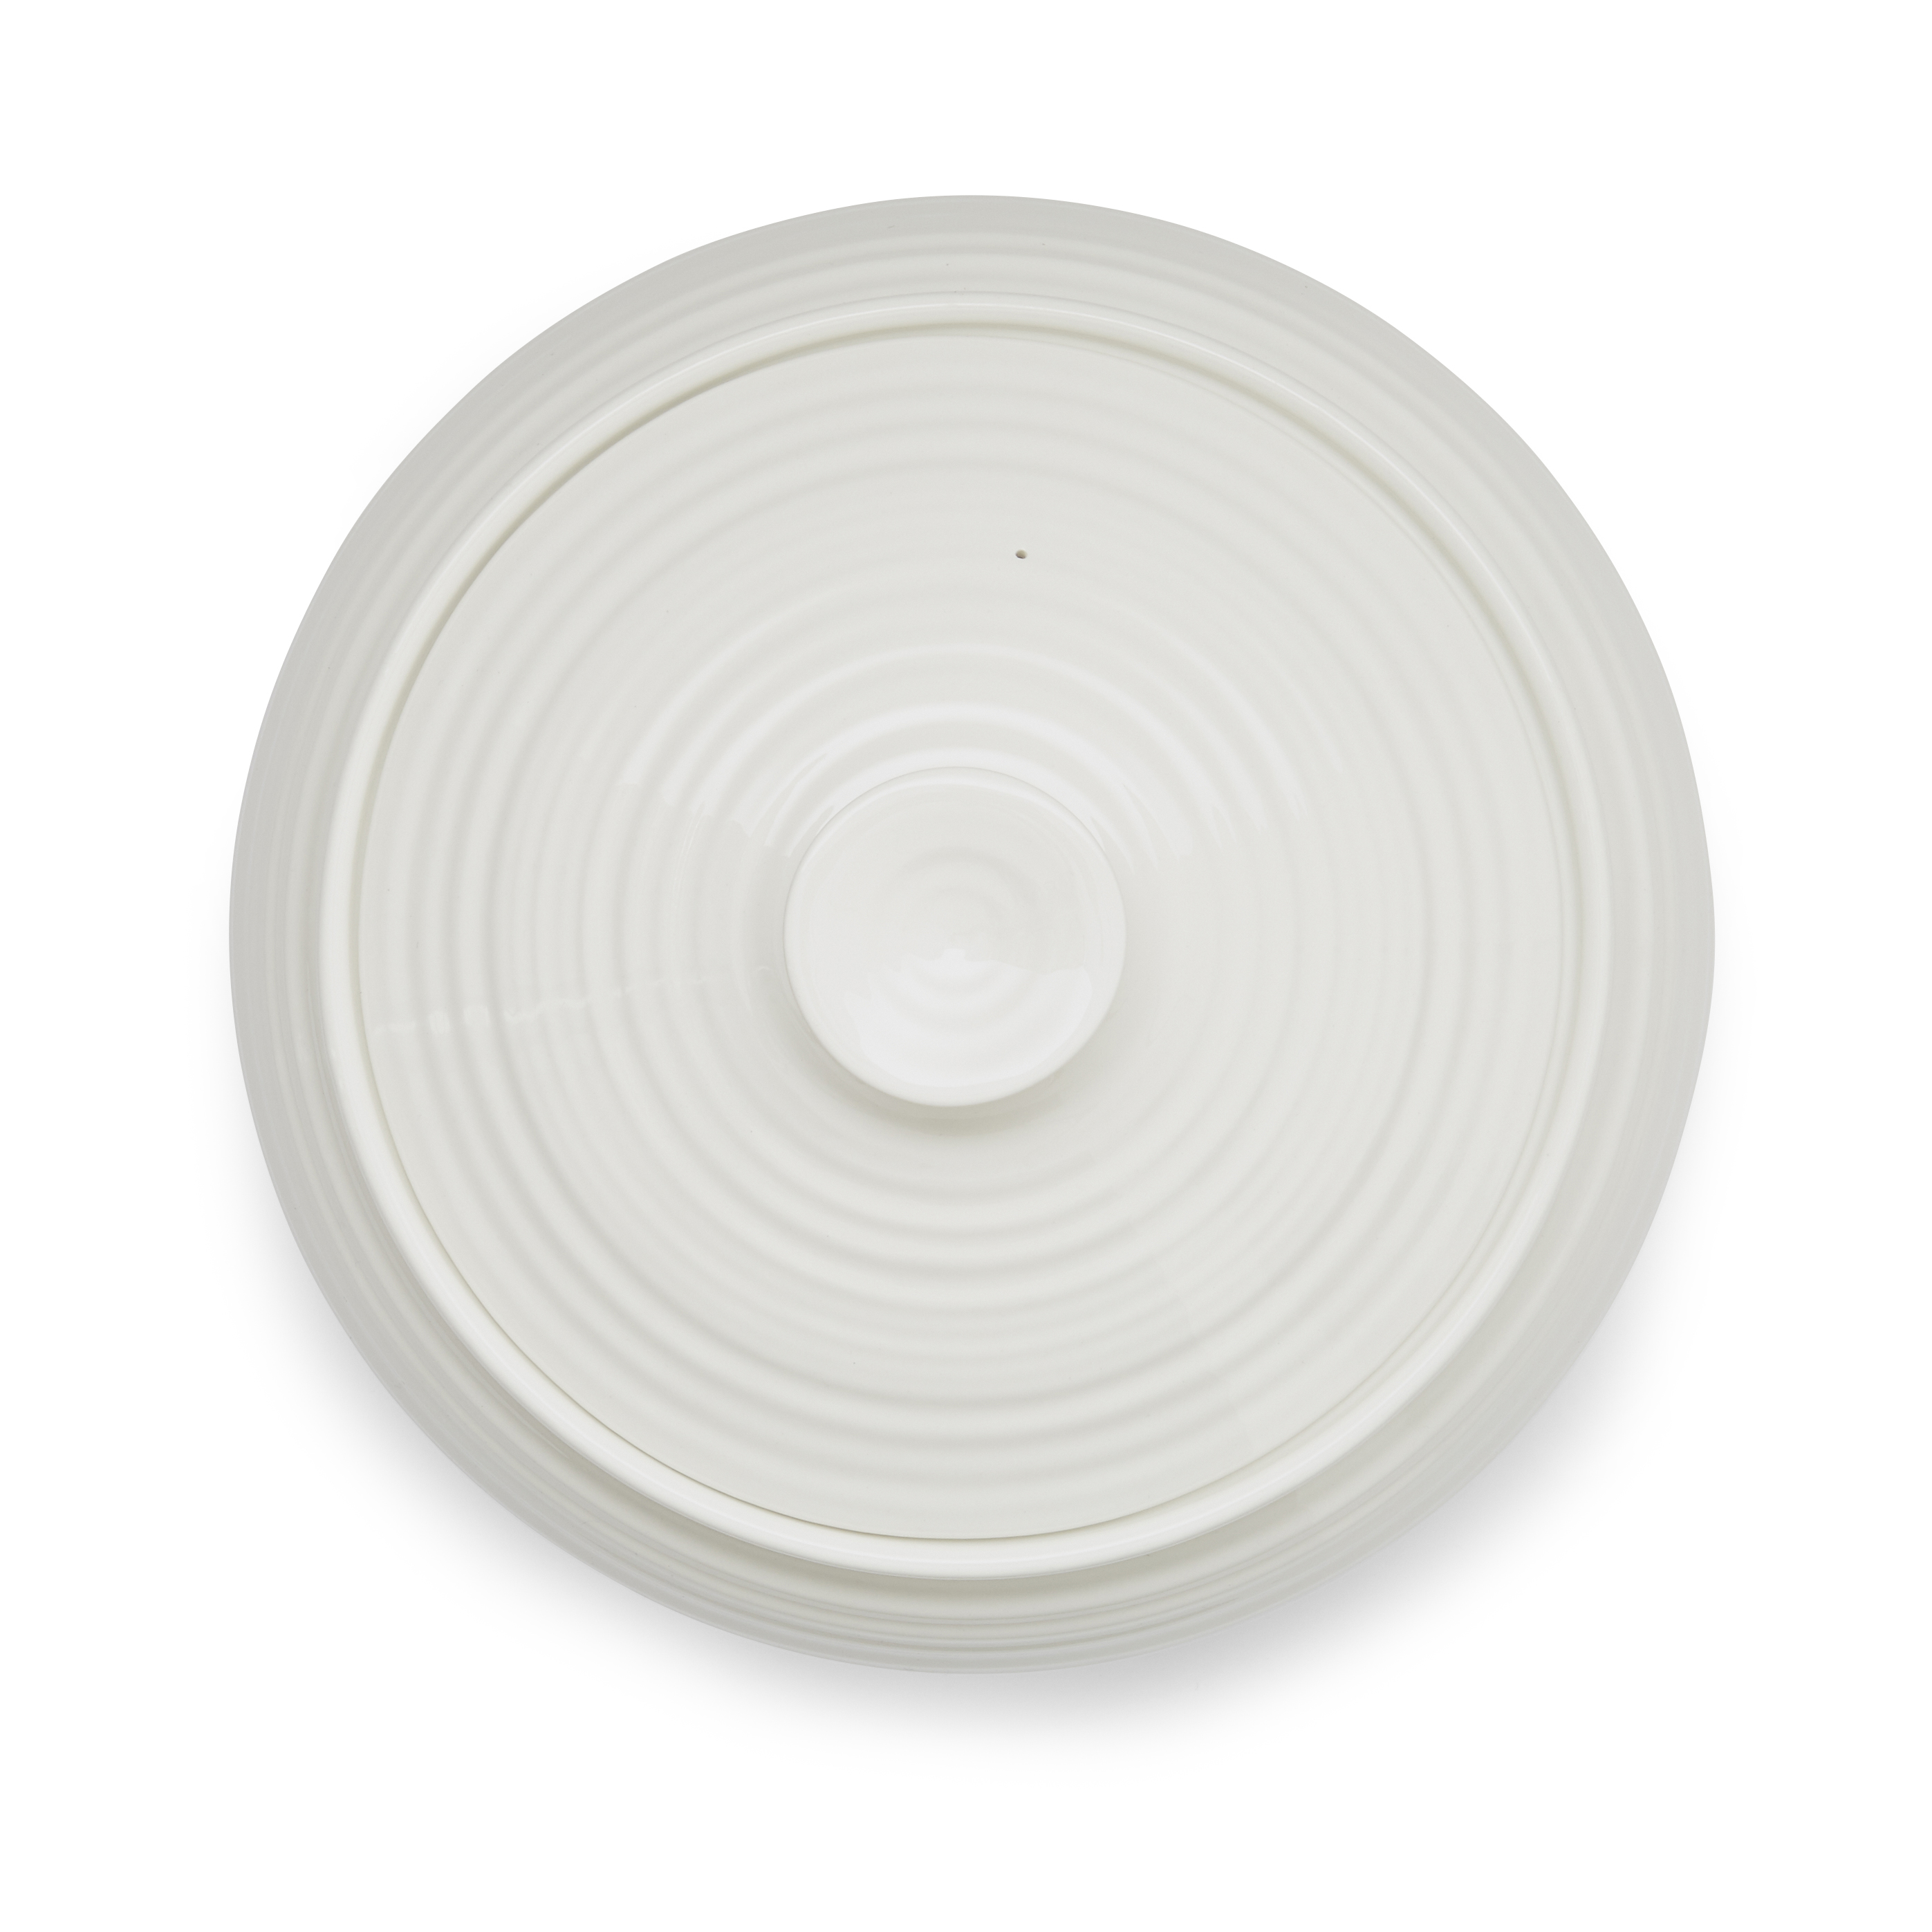 Portmeirion Sophie Conran White Low Covered Casserole image number 1